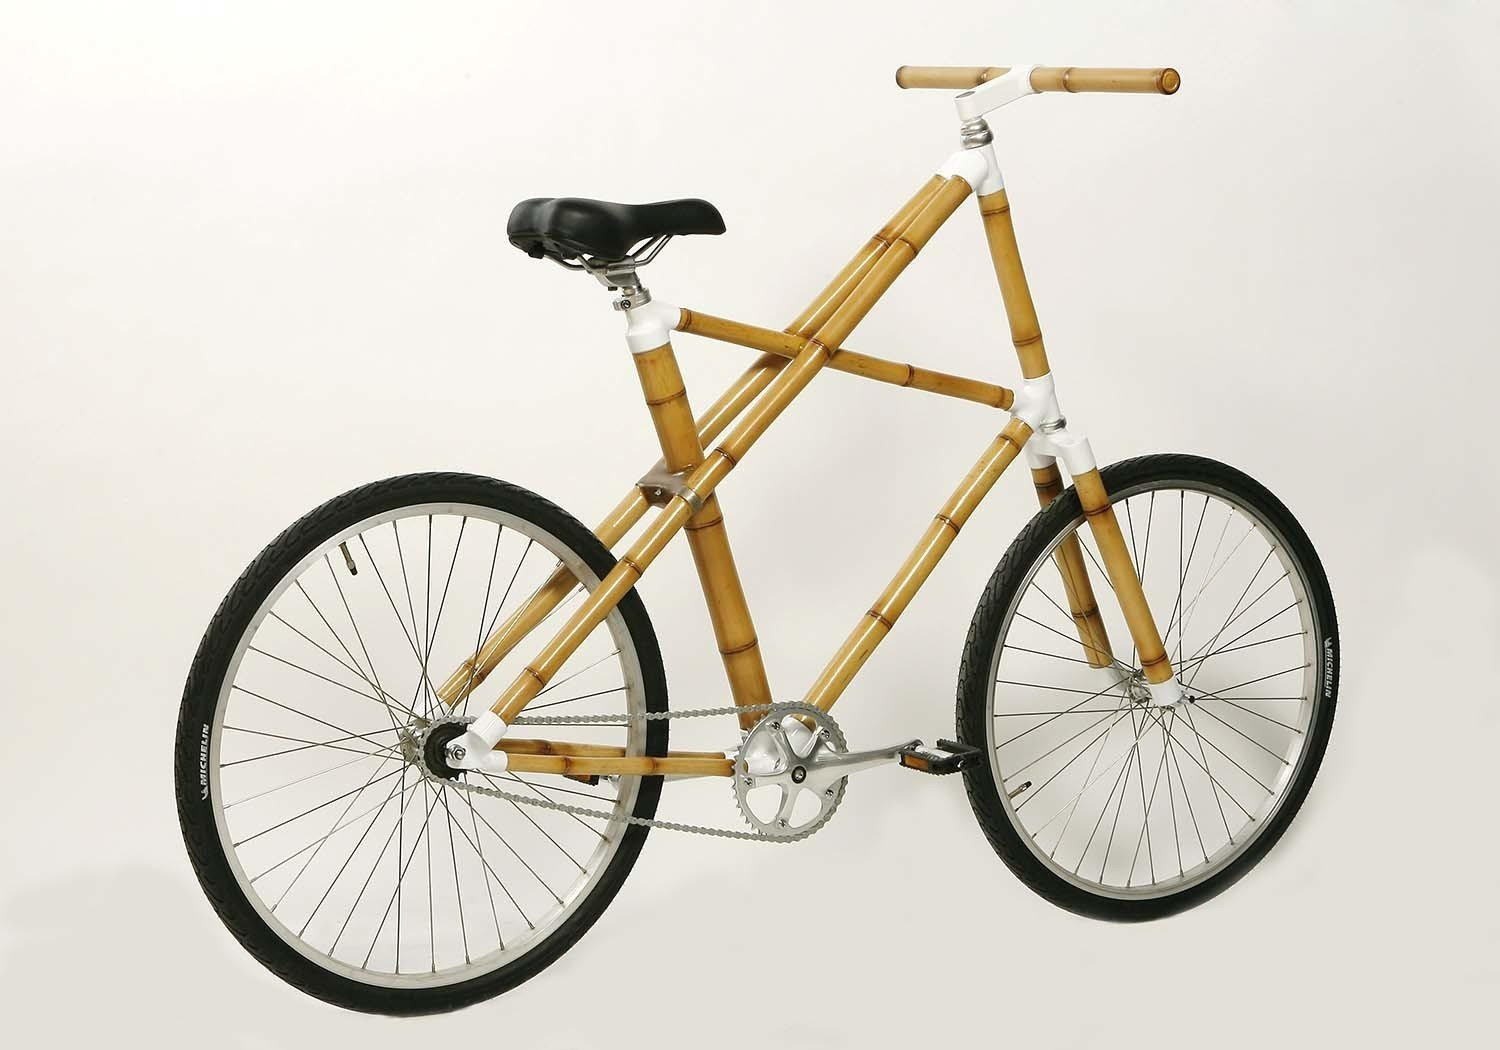 Gustav cycle by Coh&Co, 2015.  Bicycle, Bicycle by Aileen Kwun from Highlights from the New Class of Danish Design Greats